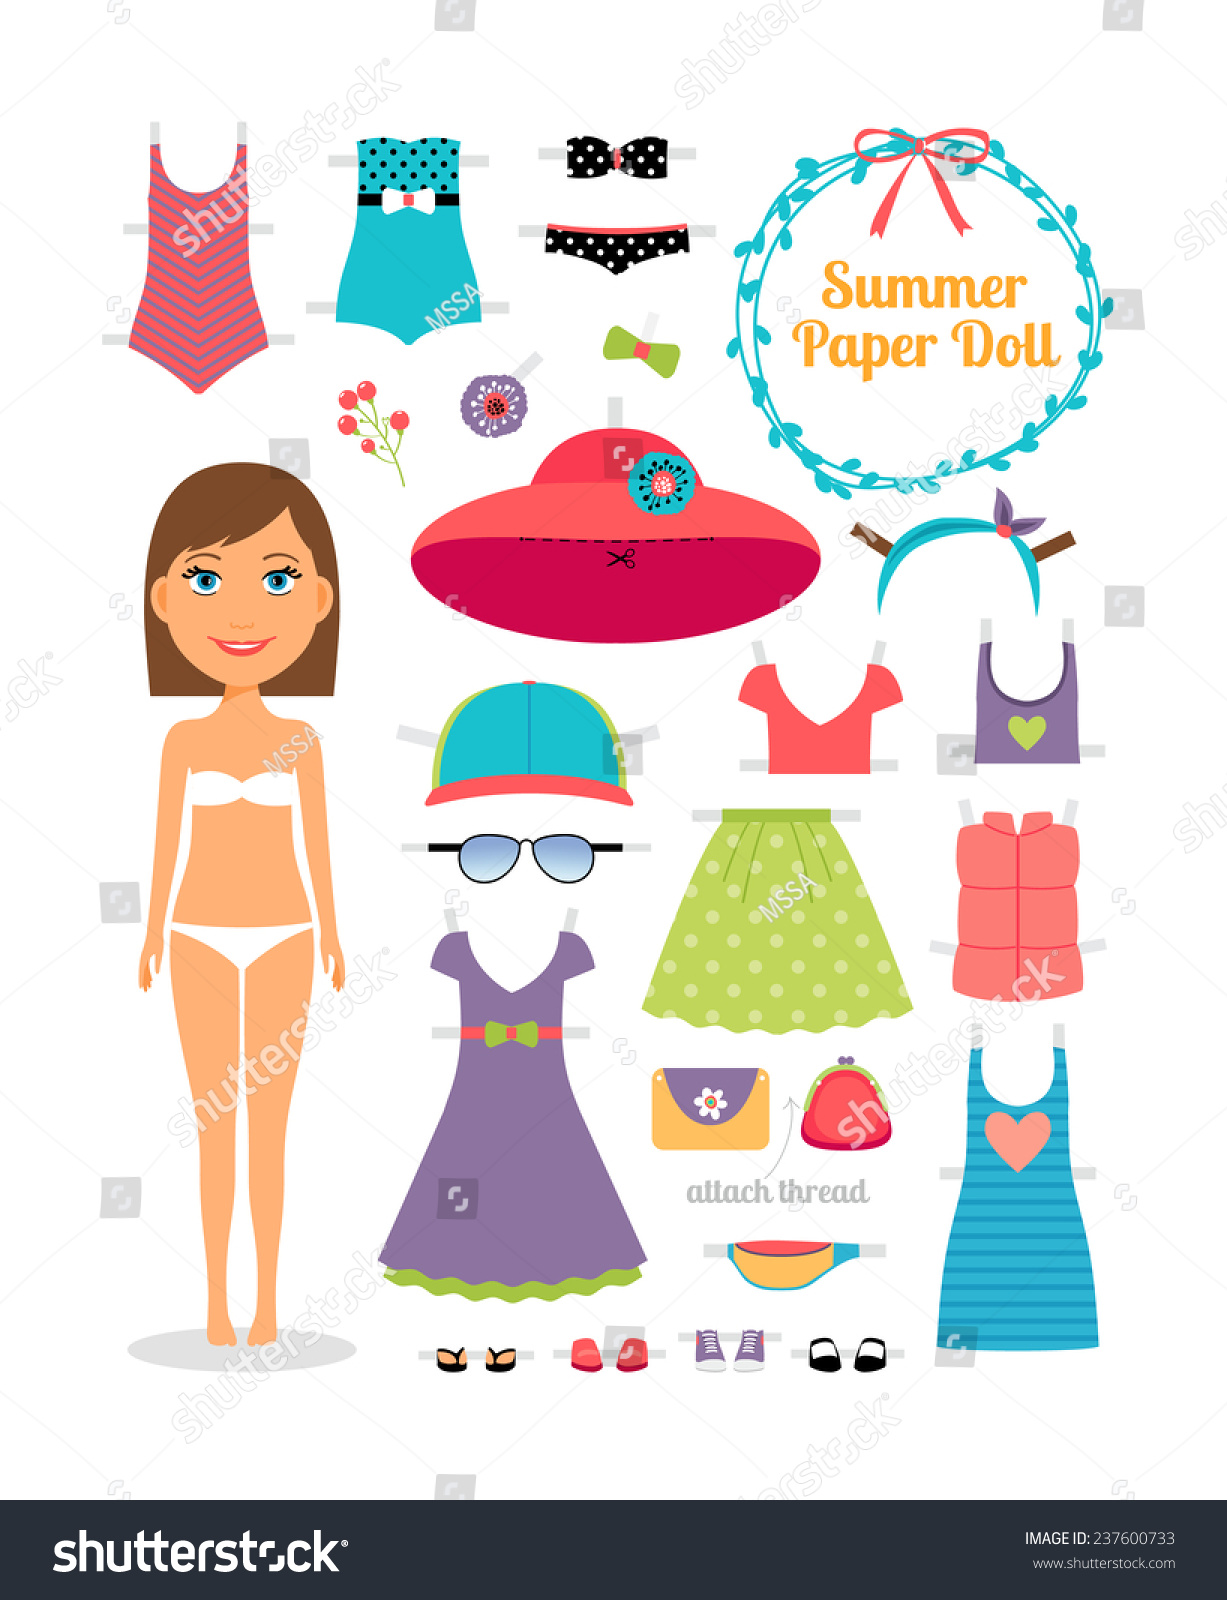 ... Worksheets likewise Boy Paper Doll Winter. on dress up doll worksheet